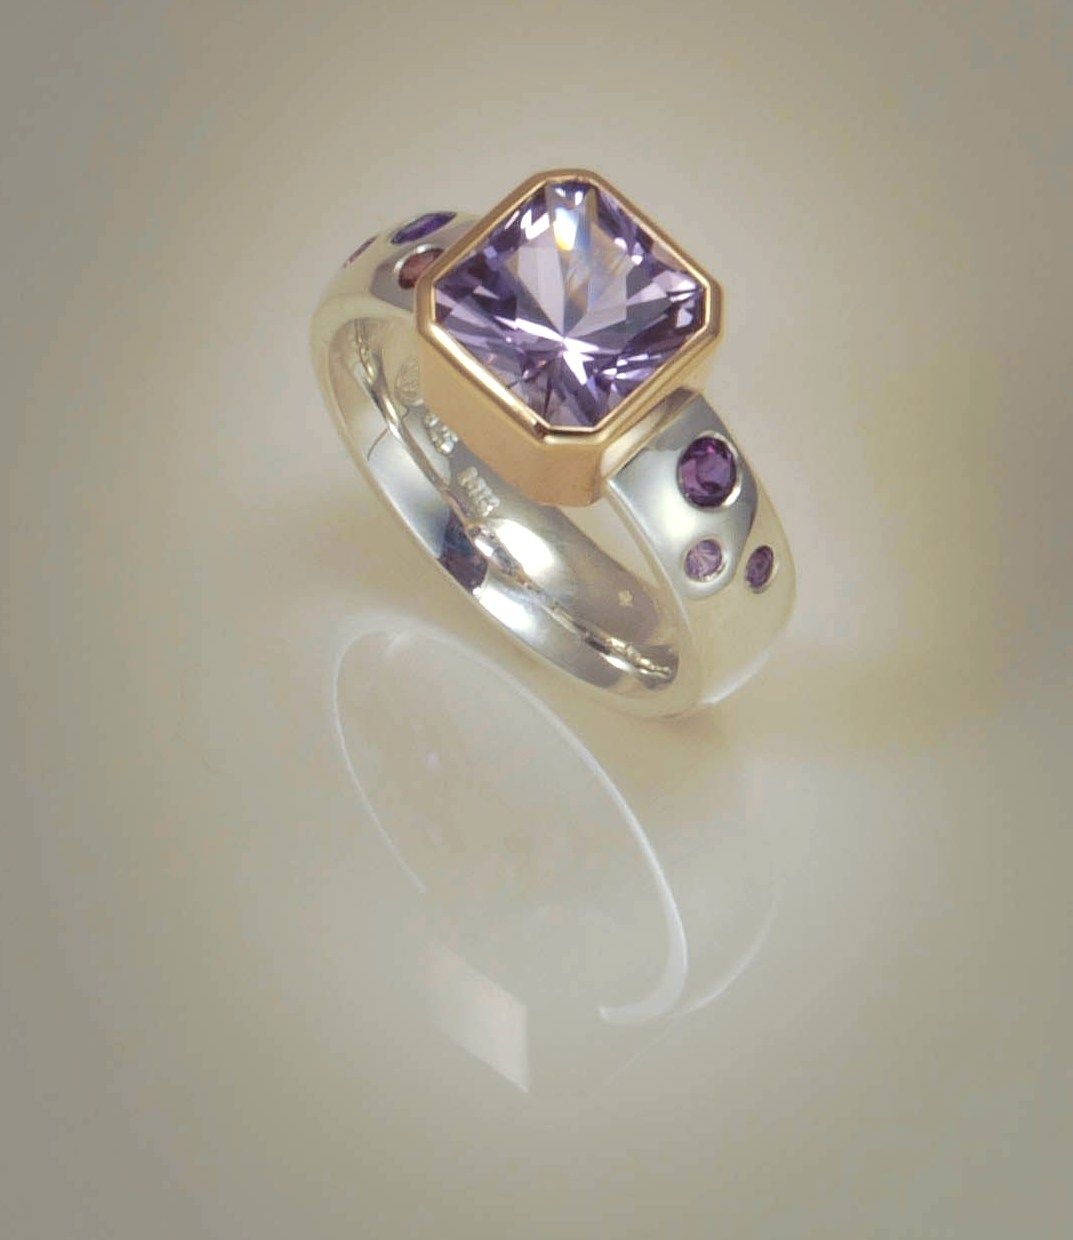 Ring Sterling silver with pale amethyst set in 9ct gold and flush